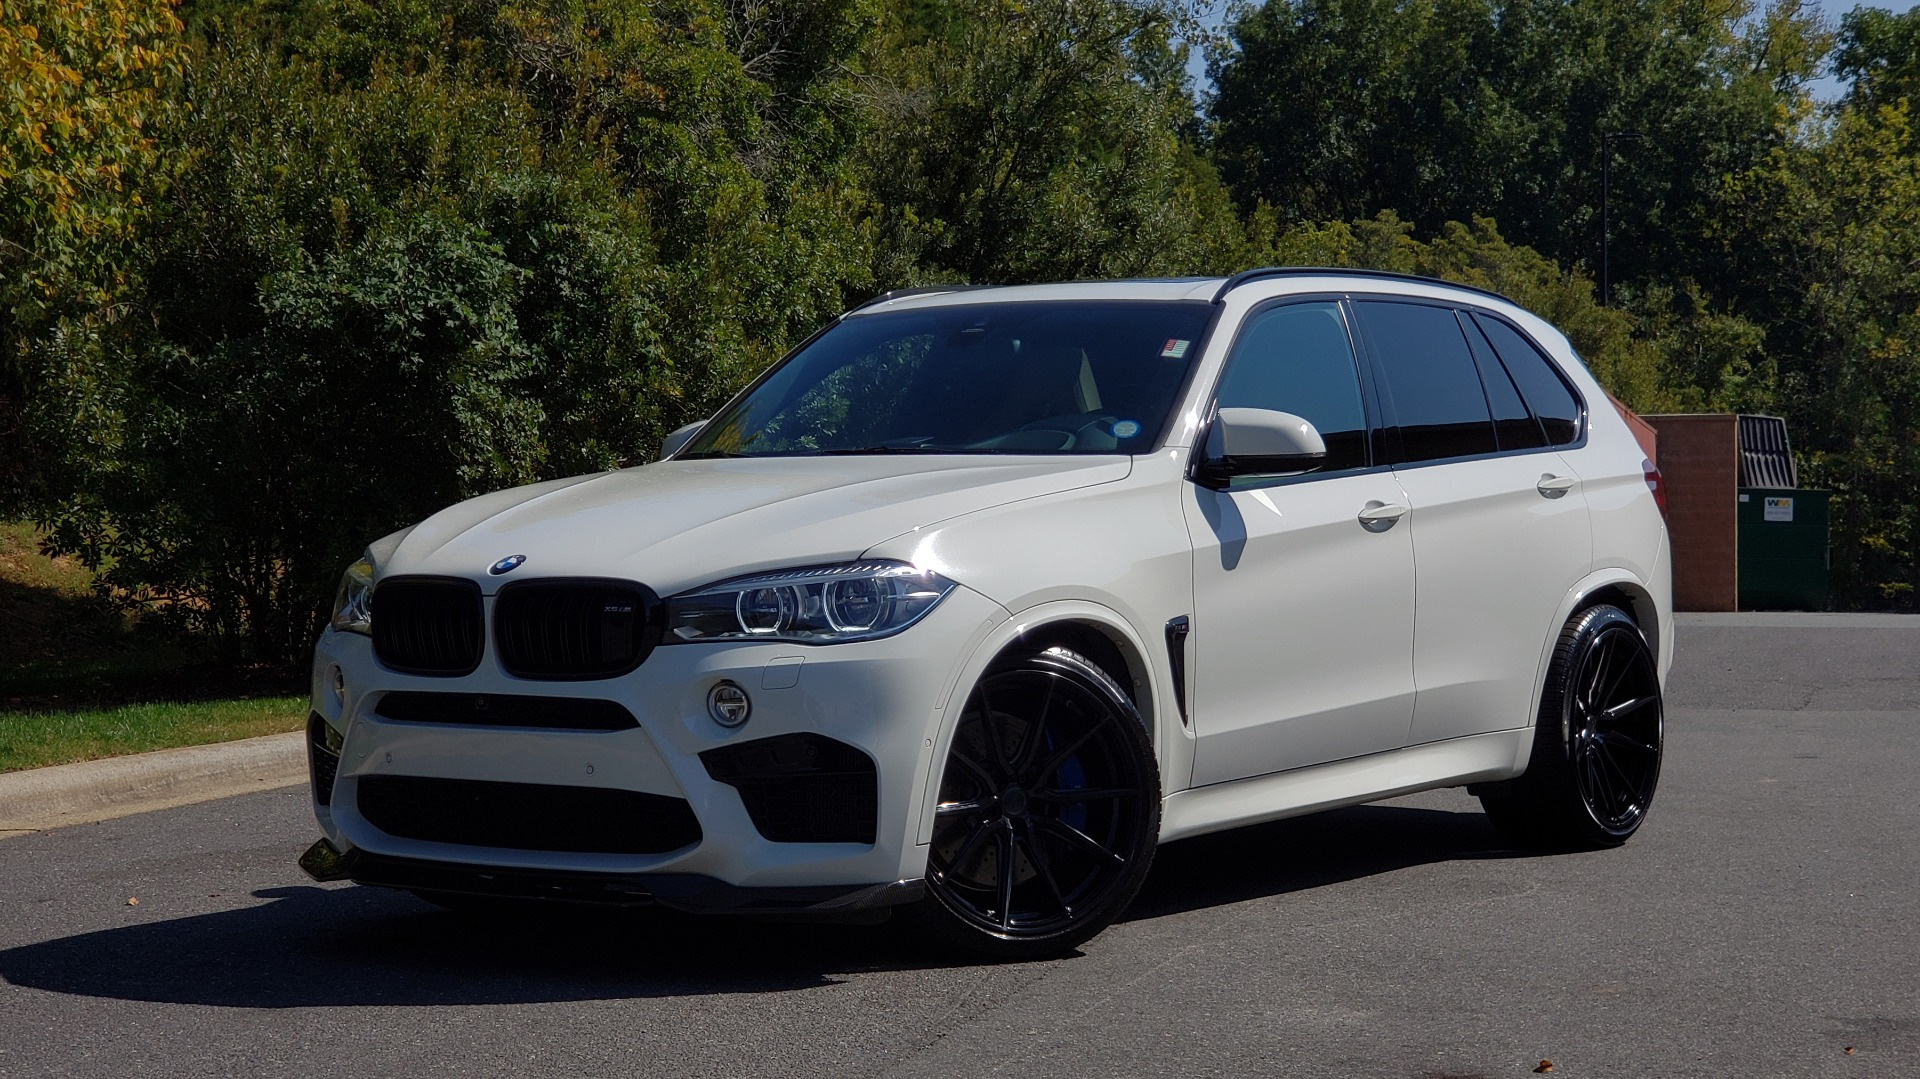 Used 2017 BMW X5 M SPORT / AWD / DRVR ASST / EXEC PKG / B&O SND / NIGHT VIS / PARK ASST for sale Sold at Formula Imports in Charlotte NC 28227 1